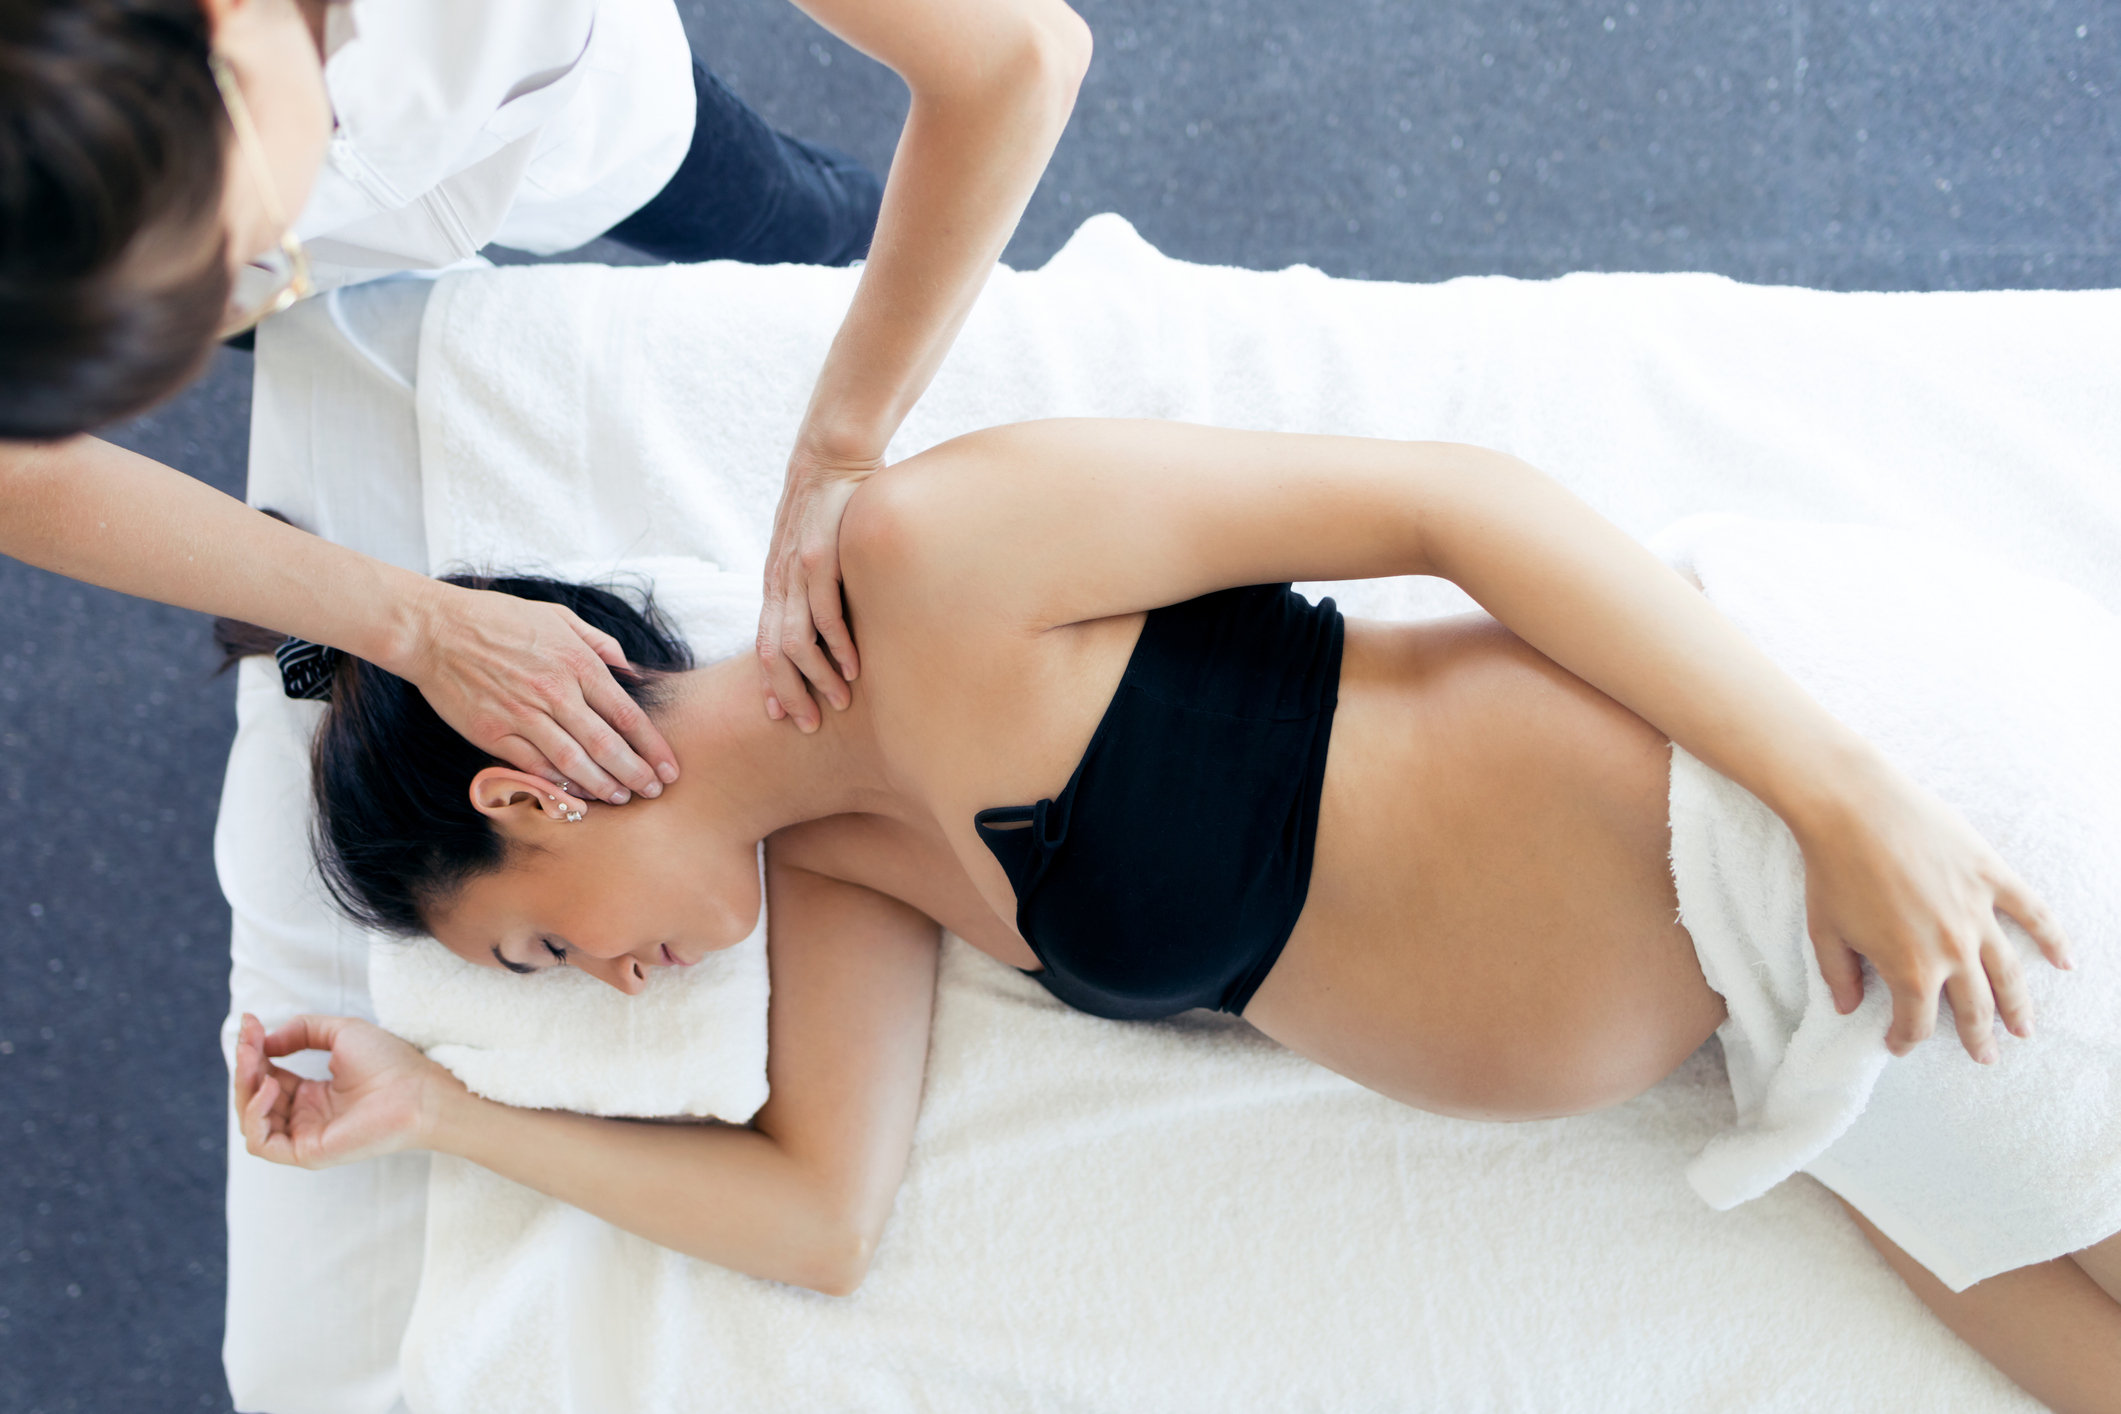 Shot of pregnant woman receiving chiropractic treatment on her neck in a clinic.